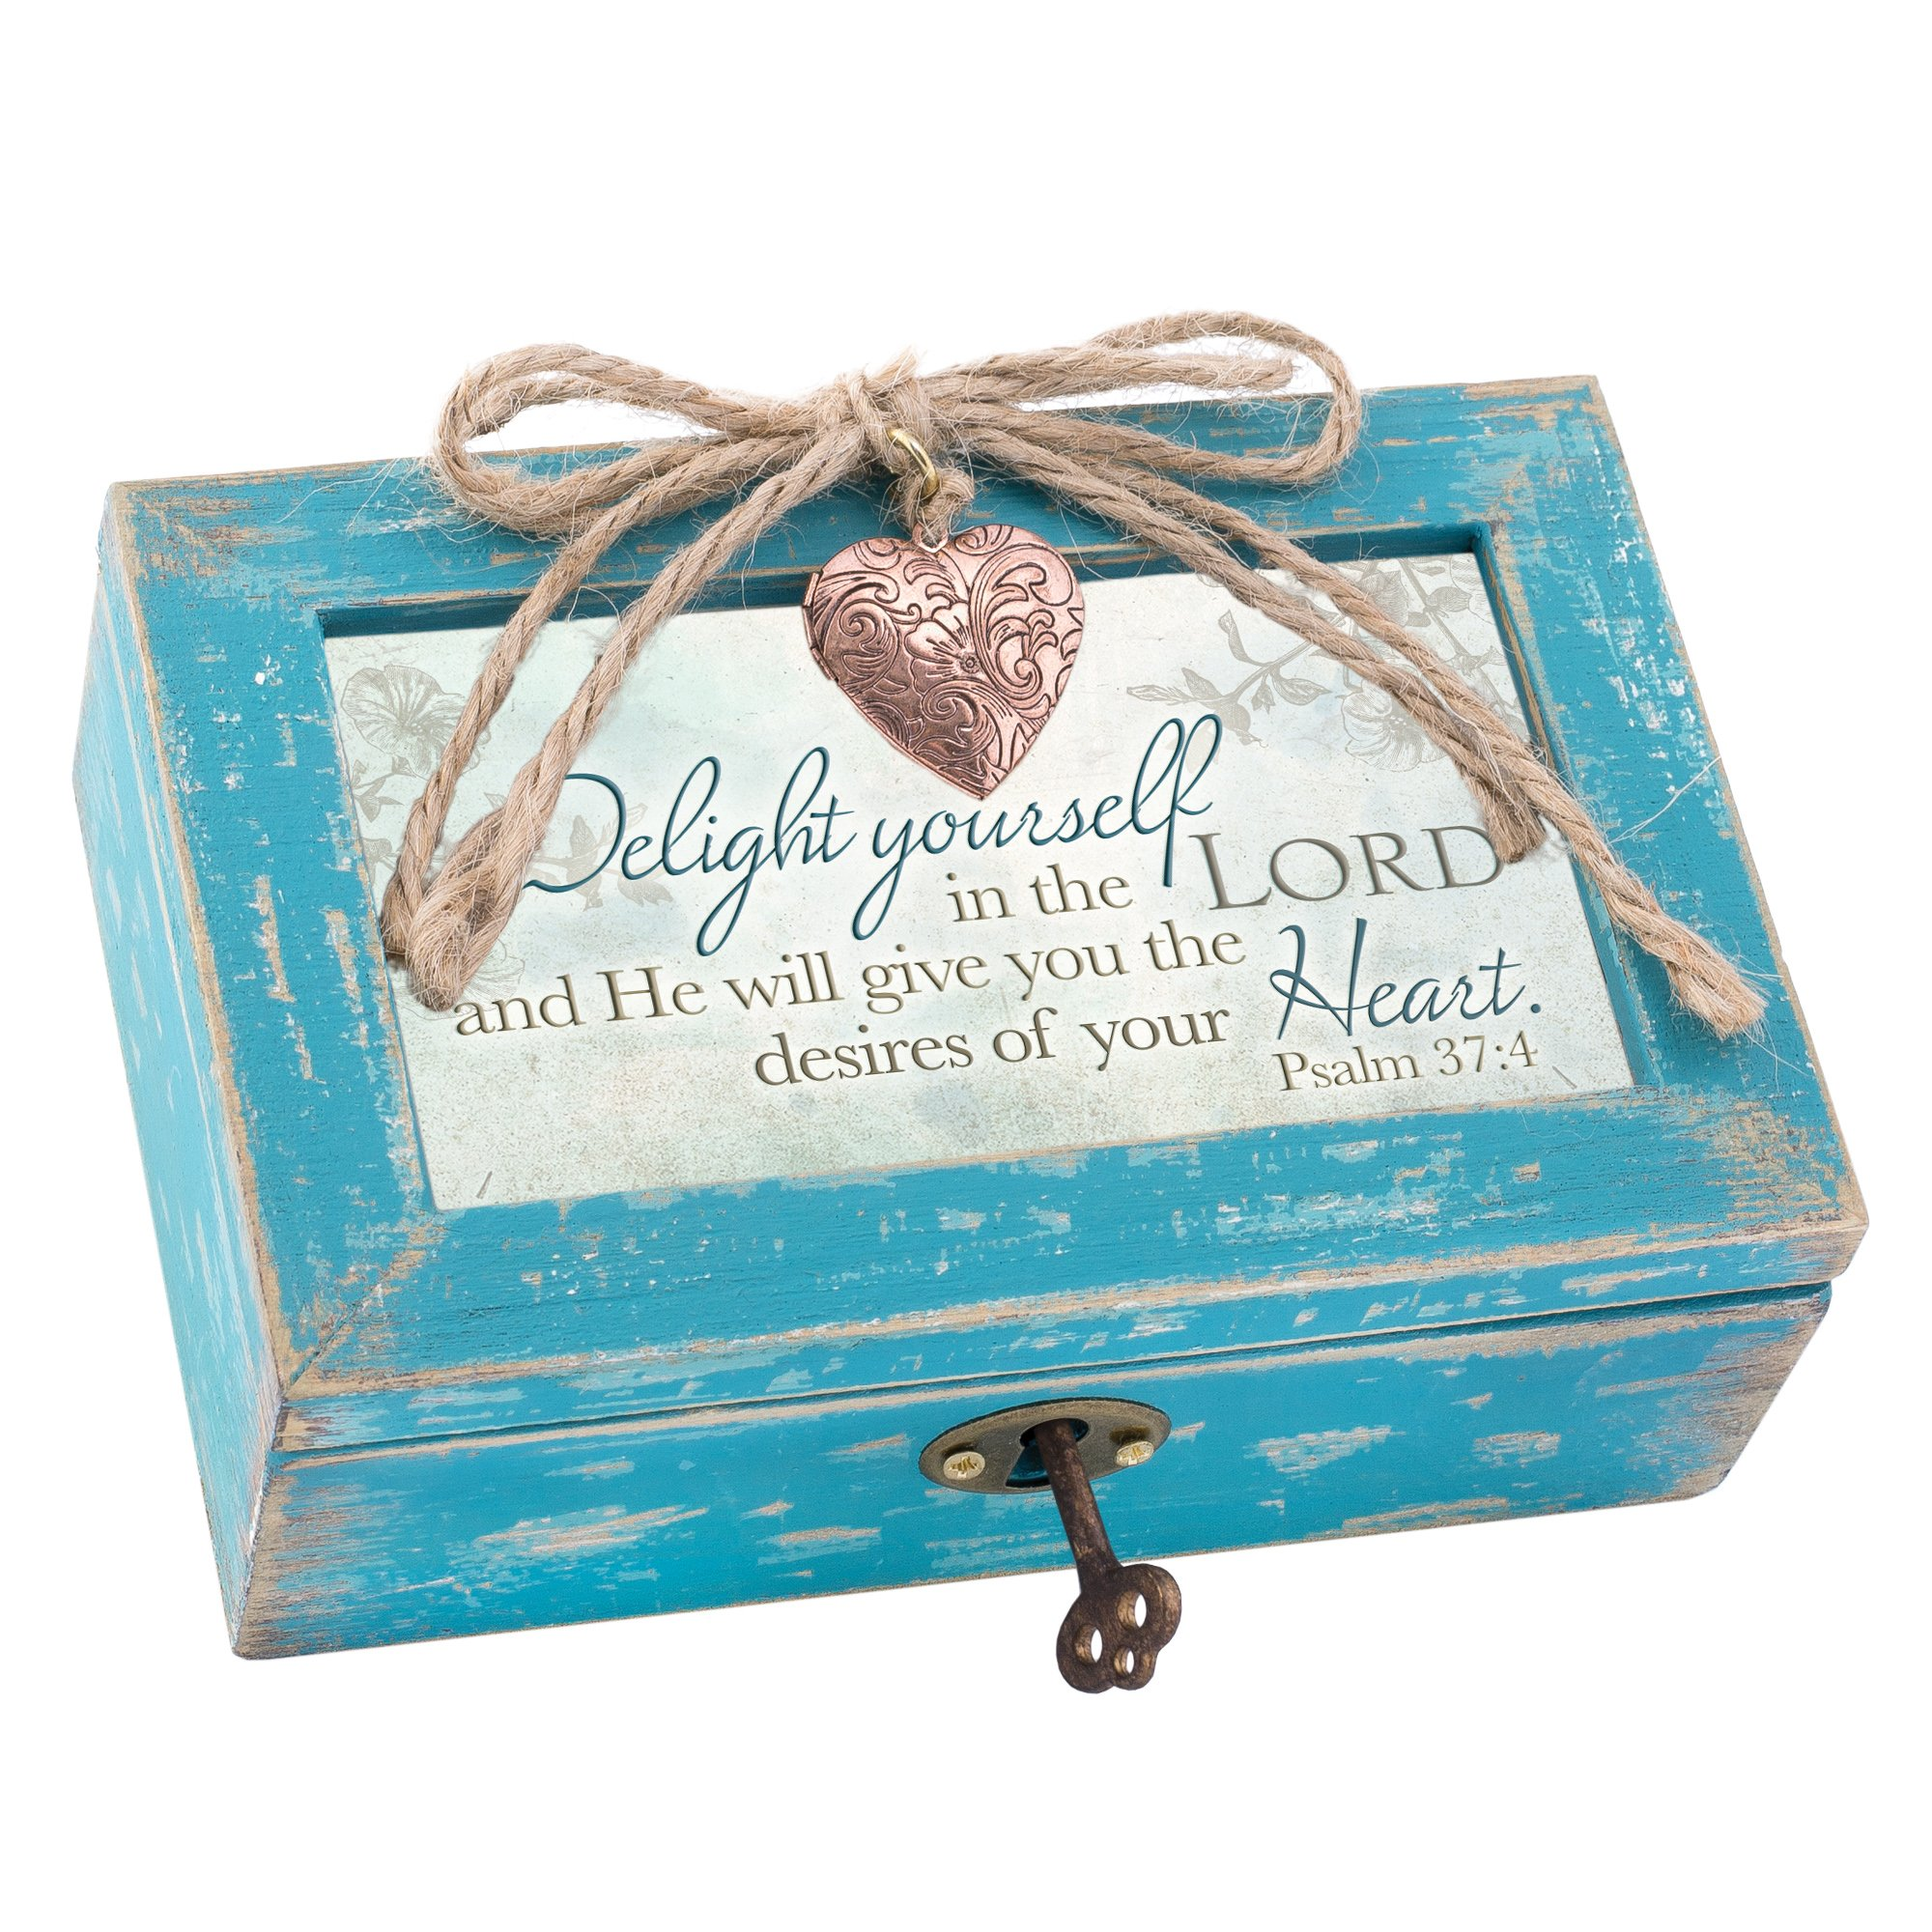 Cottage Garden Delight Yourself in the Lord Teal Wood Locket Jewelry Music Box Plays Tune We Have a Friend in Jesus